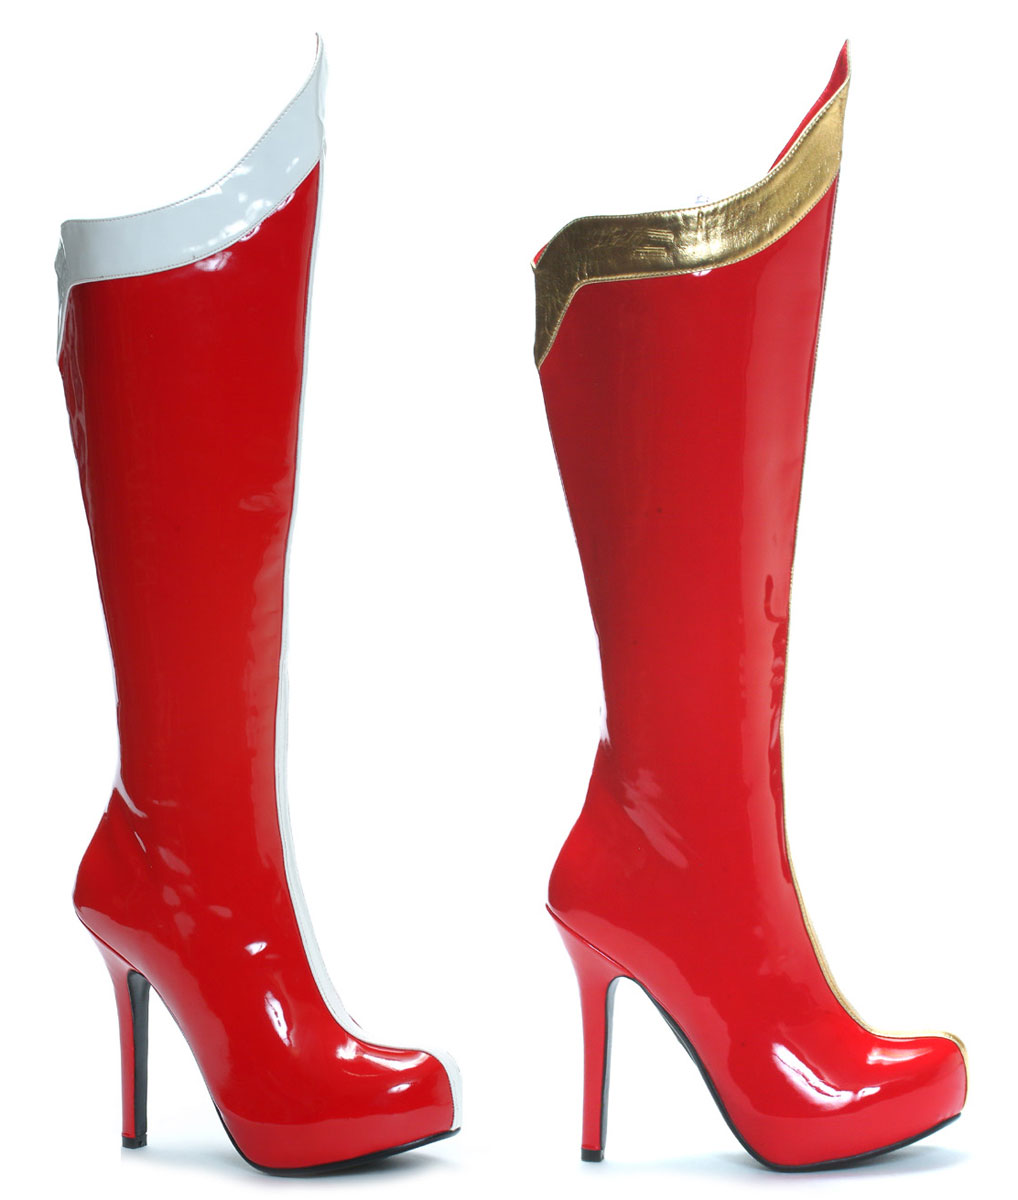 "5.5"" Stiletto Heel Knee High Wonderwoman Boots"